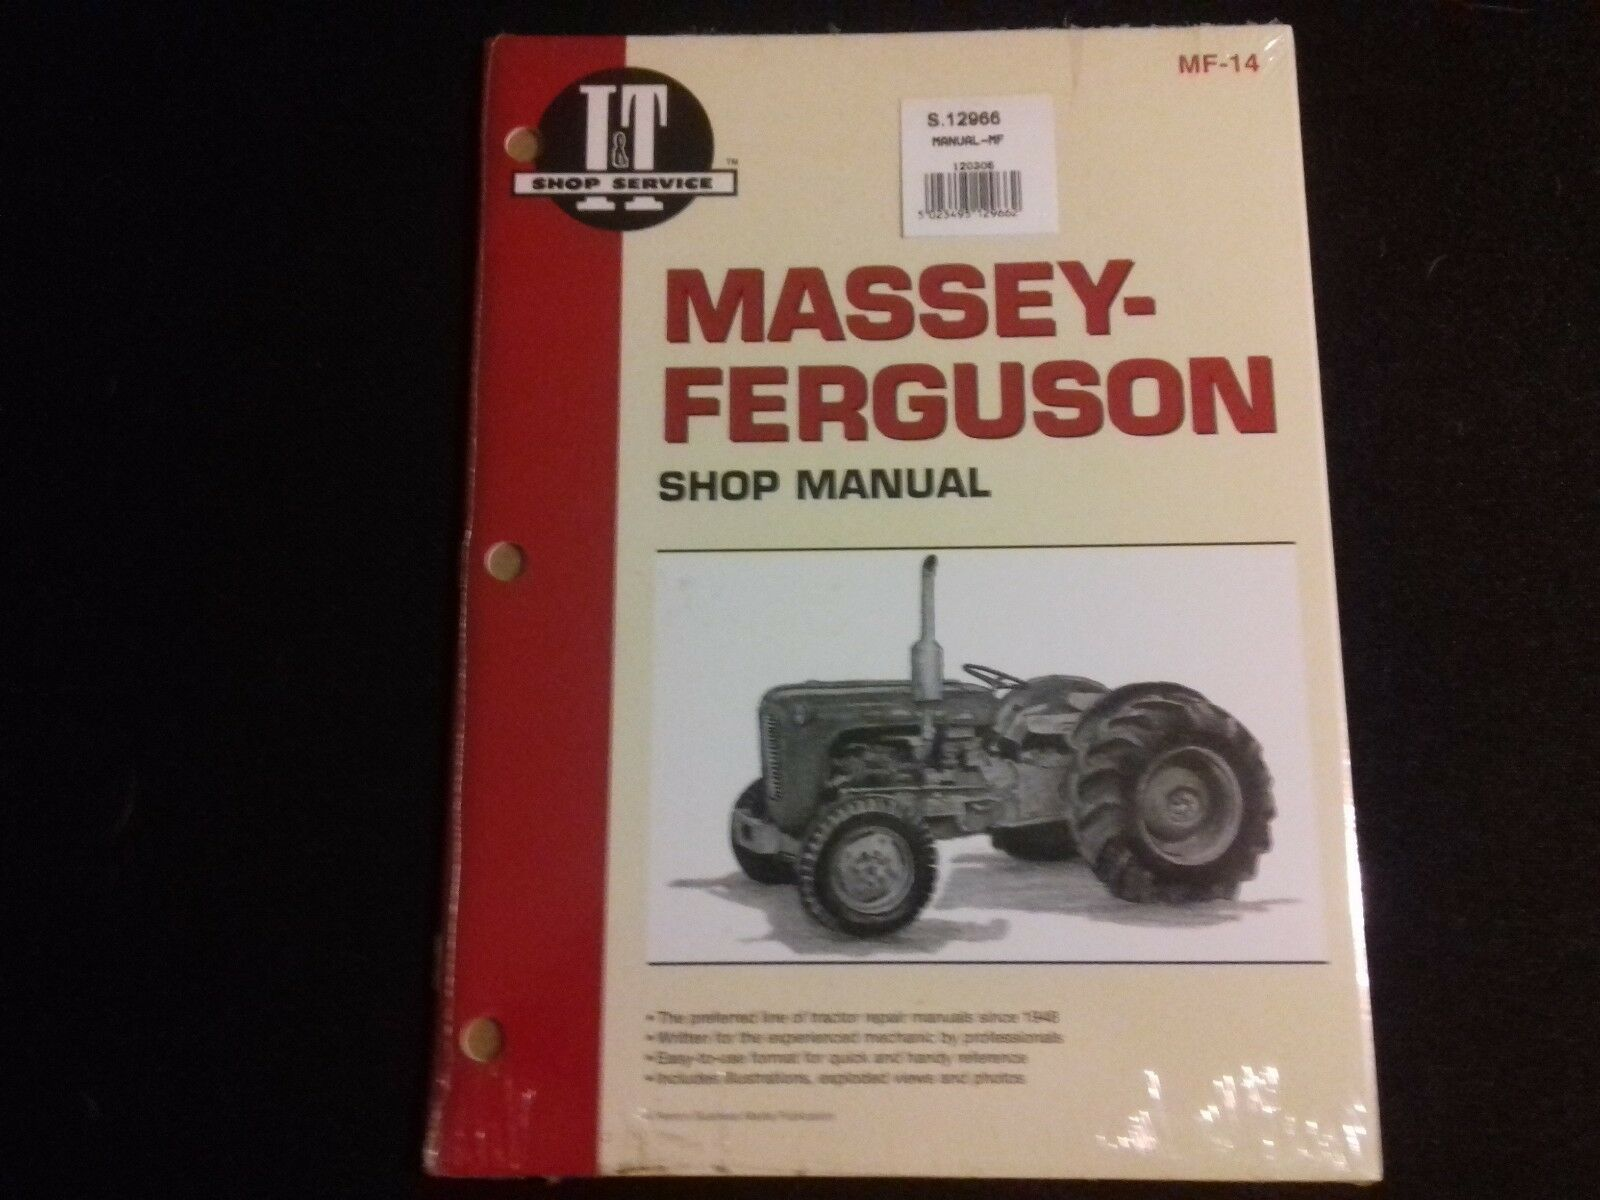 Massey Ferguson 35 Tractor Workshop Manual 1 of 2FREE Shipping ...